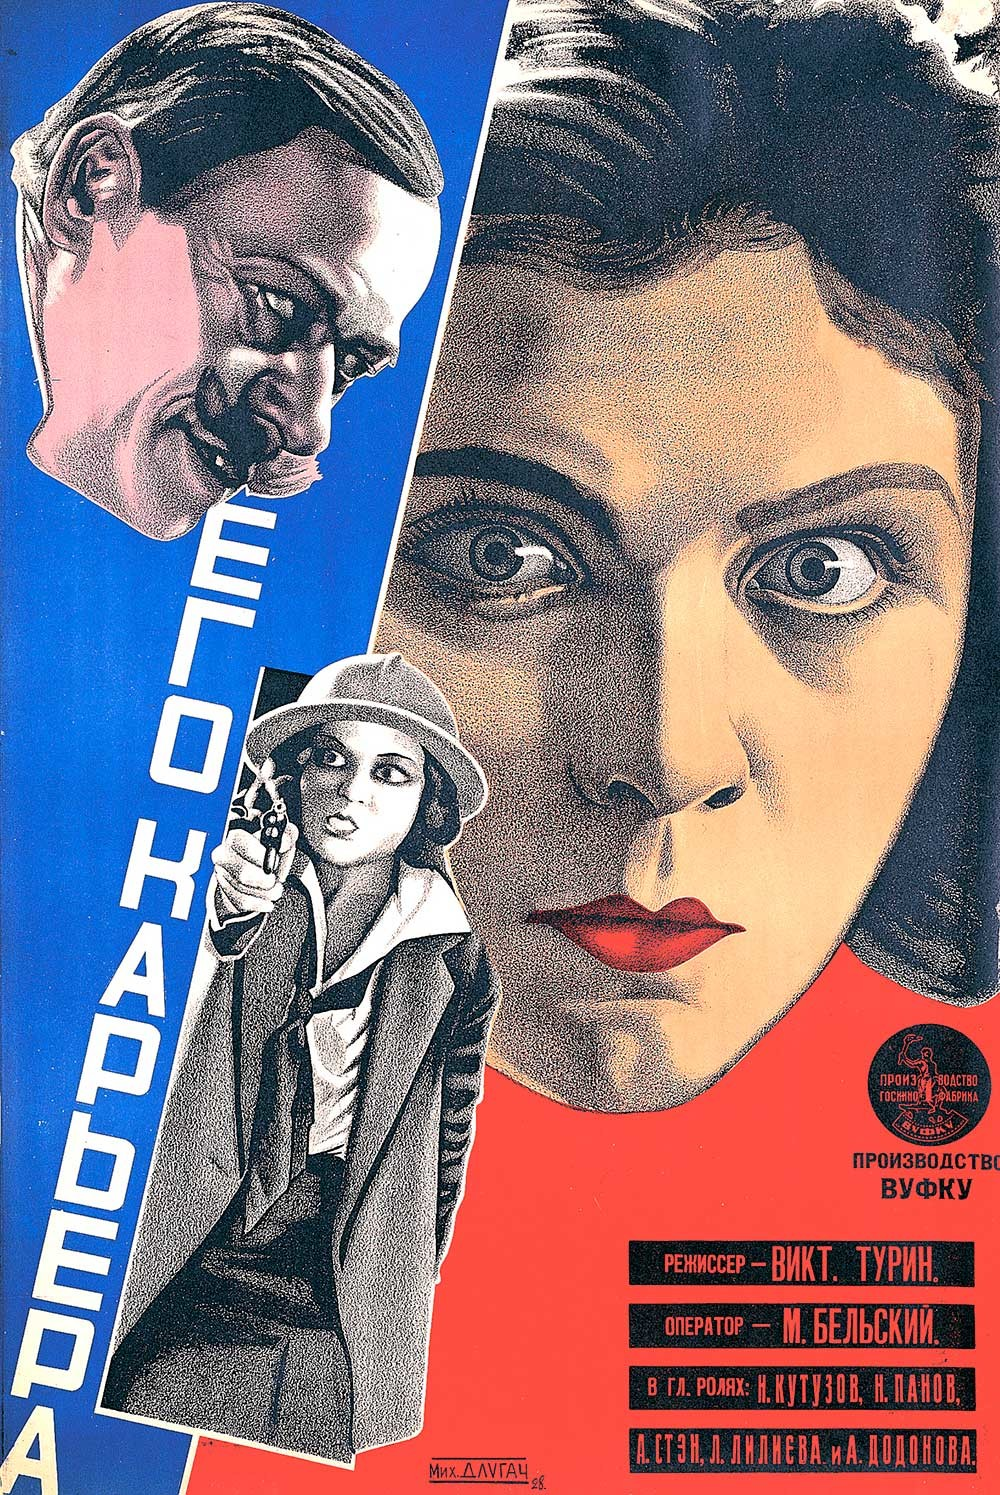 Mikhail Dlugach, Film poster for Yego Kariera, 1928